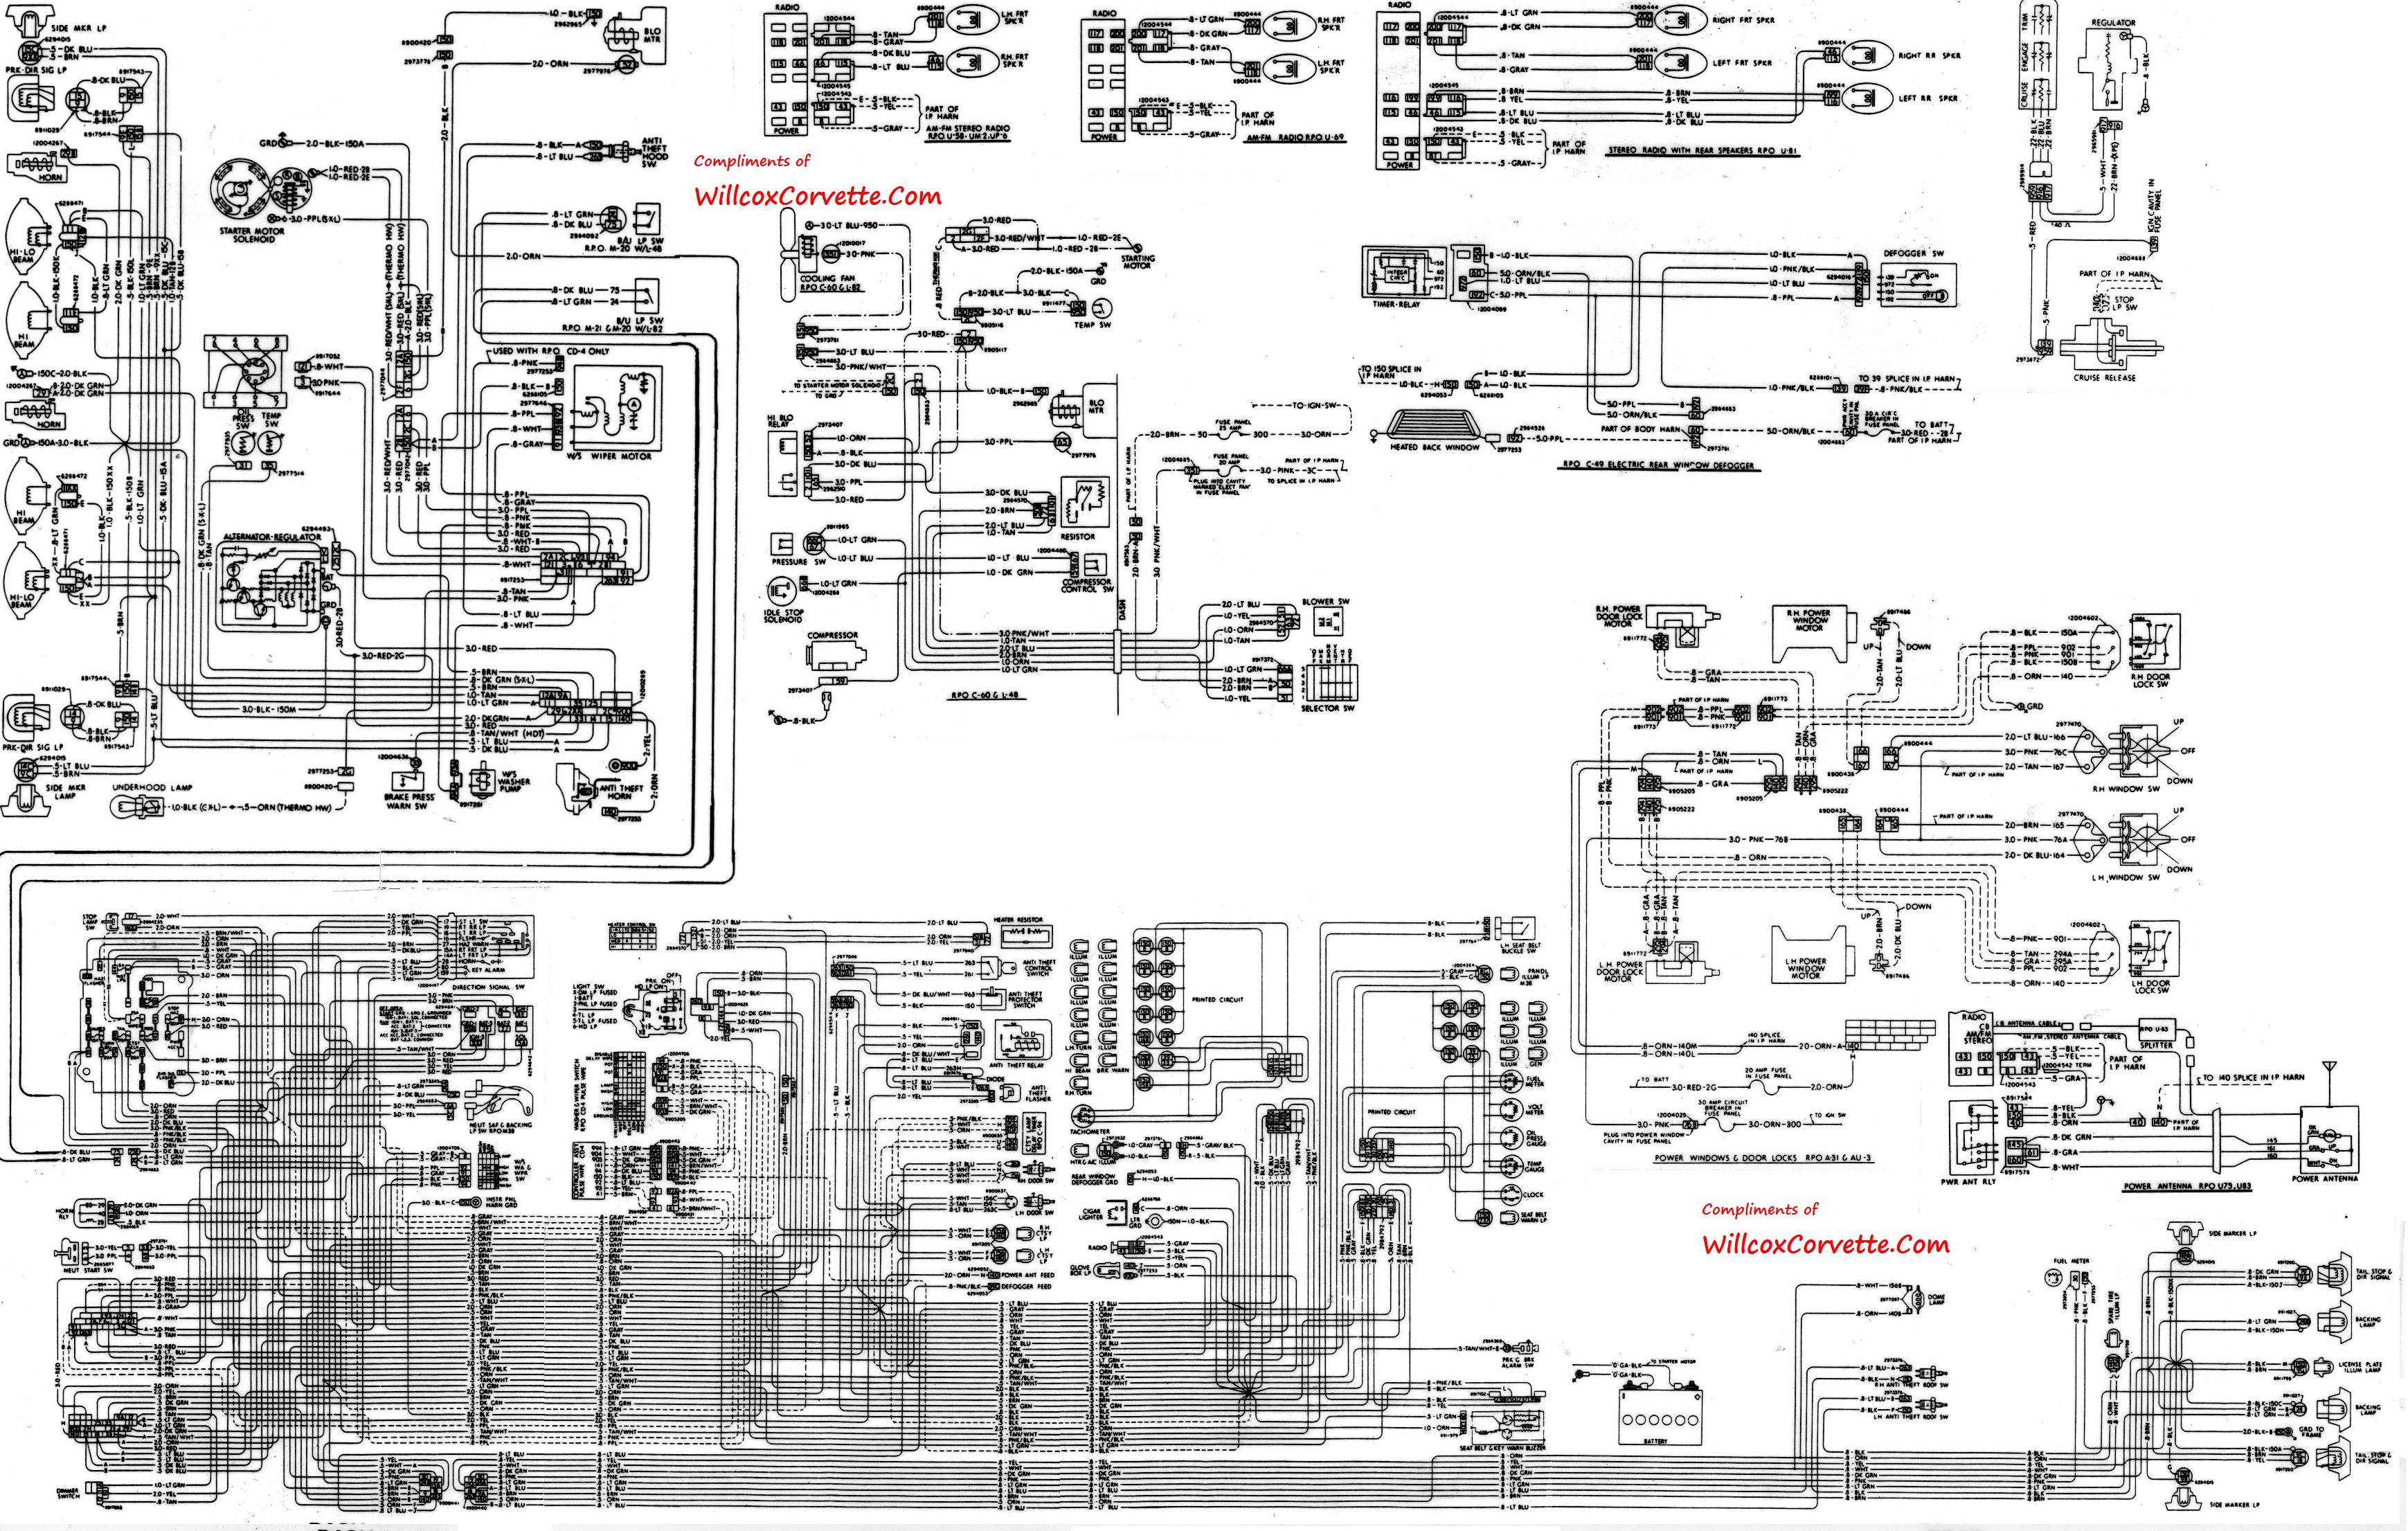 1978 Corvette Wire Harness Diagram - wiring diagram on the net on 1984 corvette wiring schematic, 1967 corvette wiring schematic, 1968 corvette wiring schematic, 1980 corvette wiring schematic, 2001 corvette wiring schematic, 1982 corvette wiring schematic, 1979 corvette wiring schematic, 1985 corvette wiring schematic, 1987 corvette wiring schematic, 1981 corvette wiring schematic, 1963 corvette wiring schematic, 1961 corvette wiring schematic, 1966 corvette wiring schematic, 1973 corvette wiring schematic, 1969 corvette wiring schematic, 68 corvette wiring schematic, 1978 corvette wiring schematic, 1976 corvette wiring schematic, 1972 corvette wiring schematic, 1975 corvette wiring schematic,